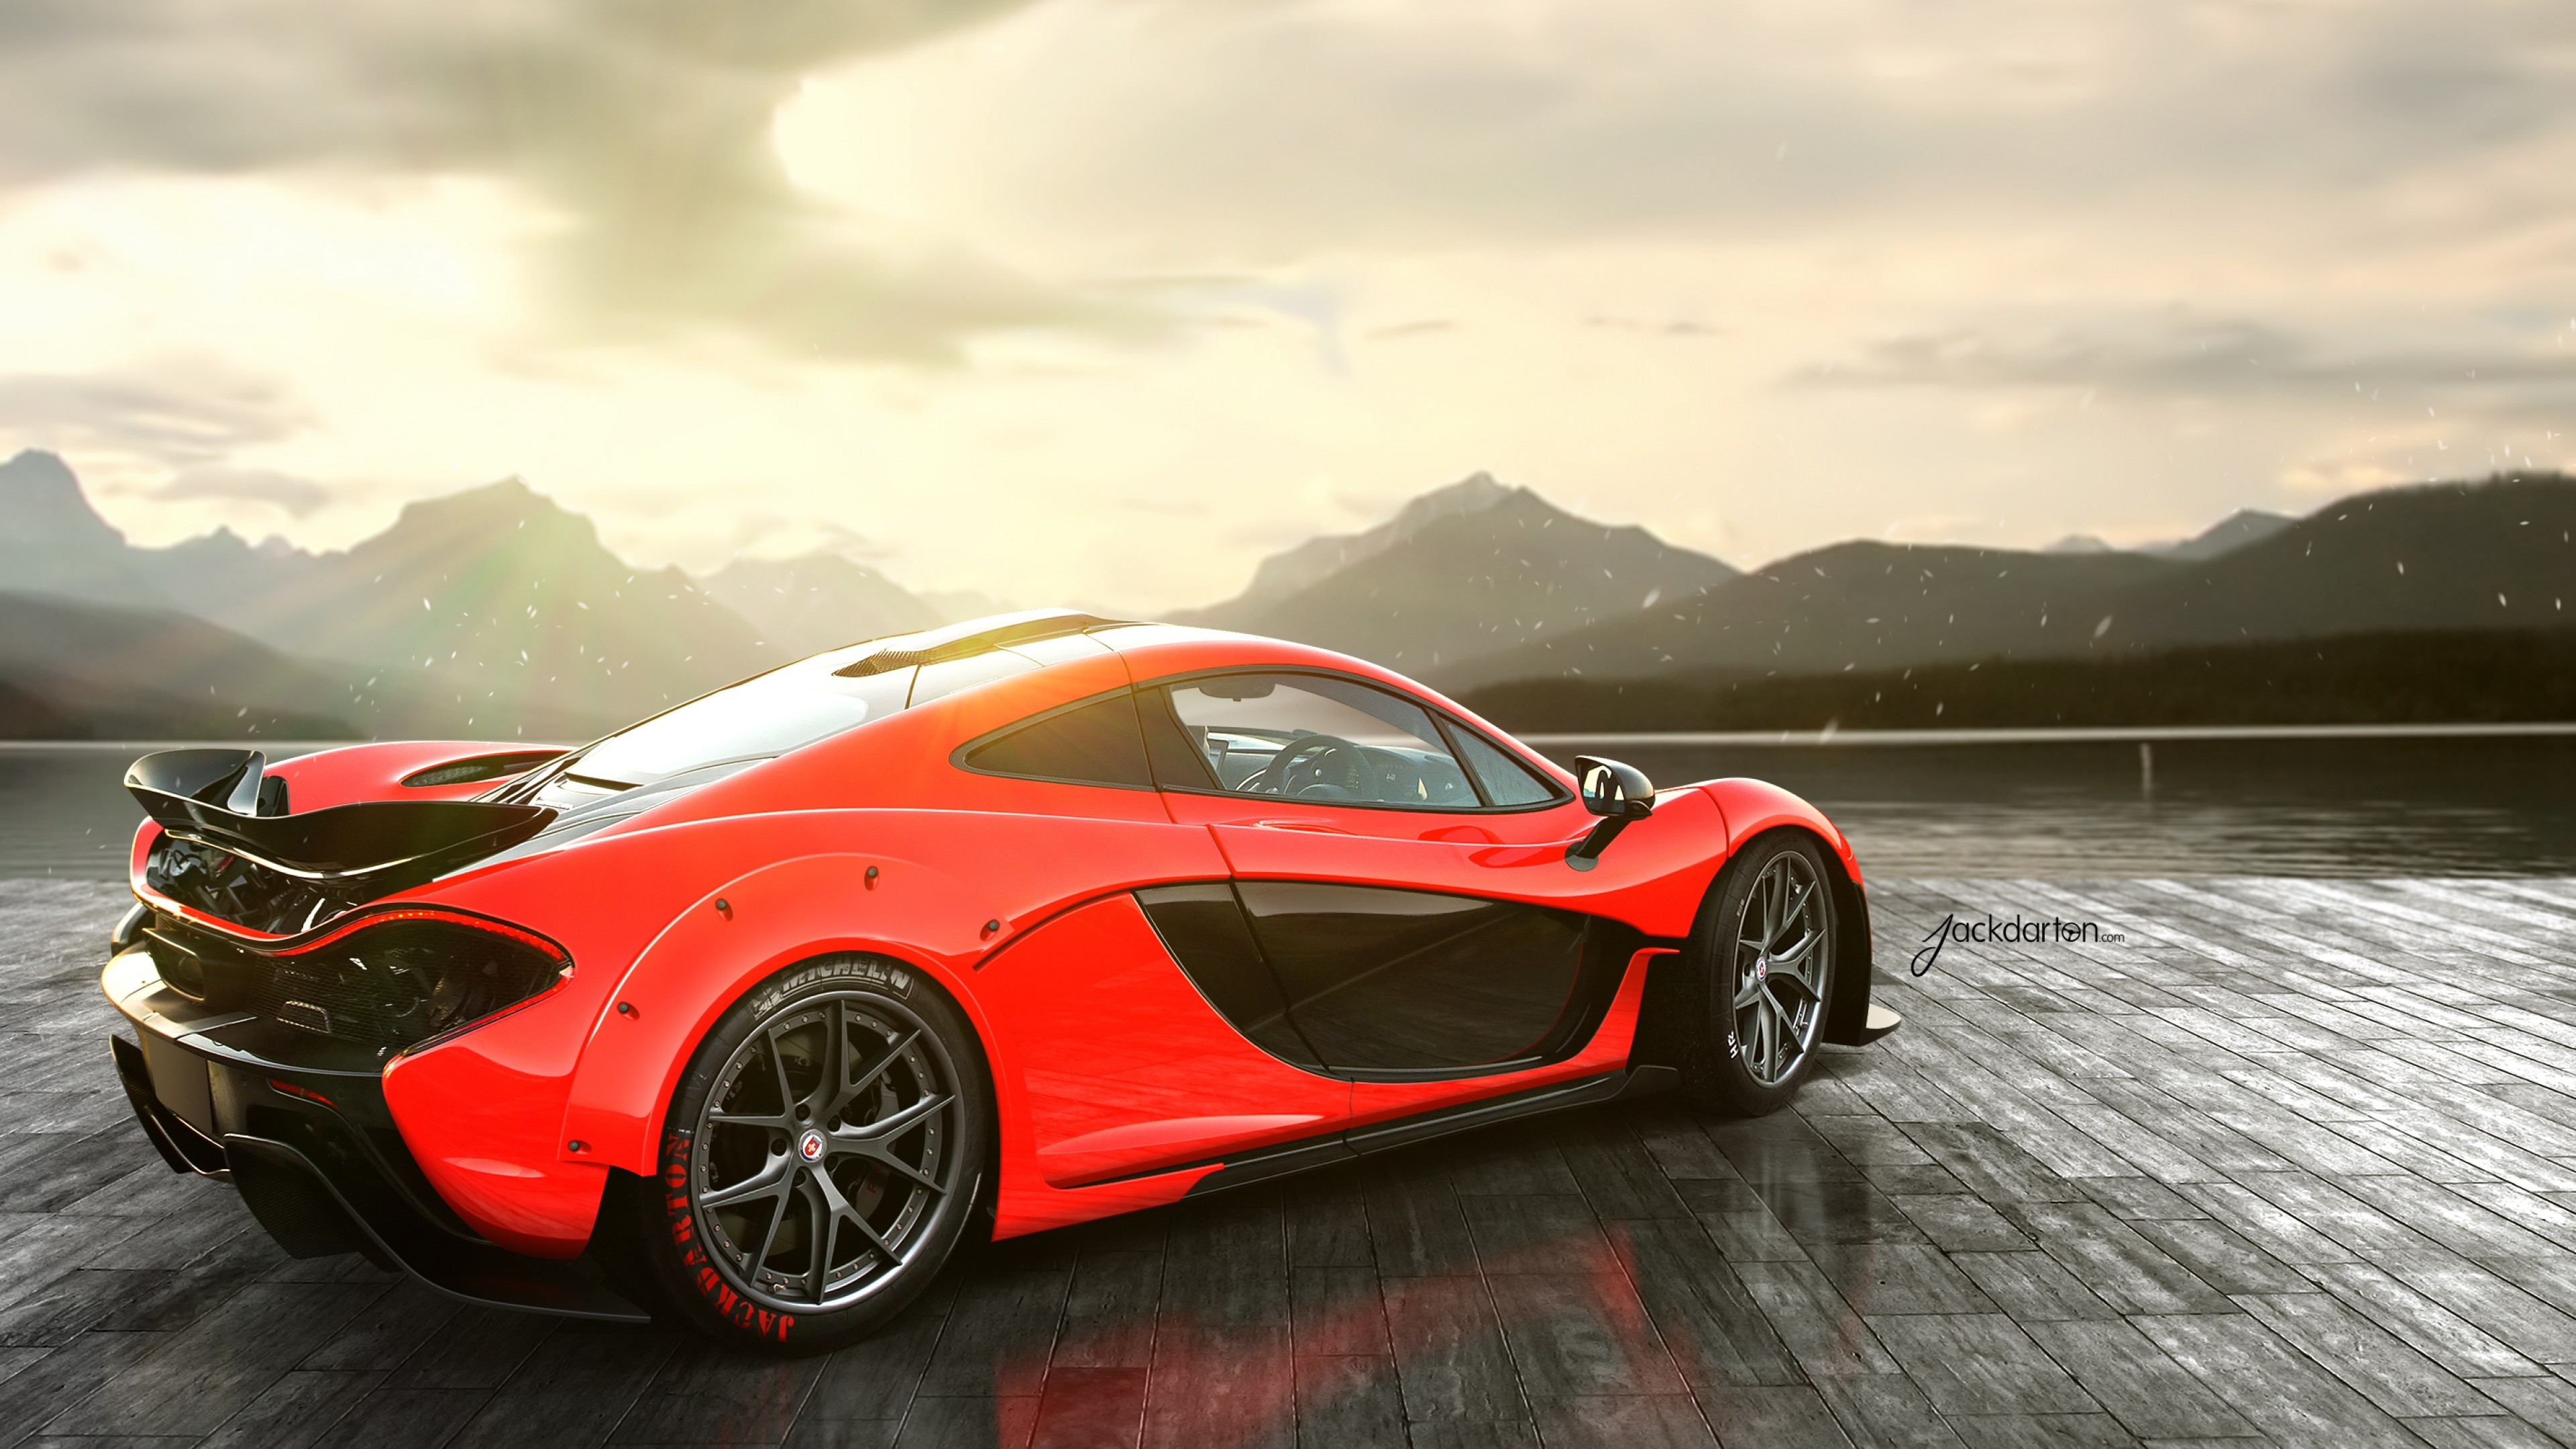 3840x2160 ... Background 4K Ultra HD.  Wallpaper mclaren, p1, red, rear